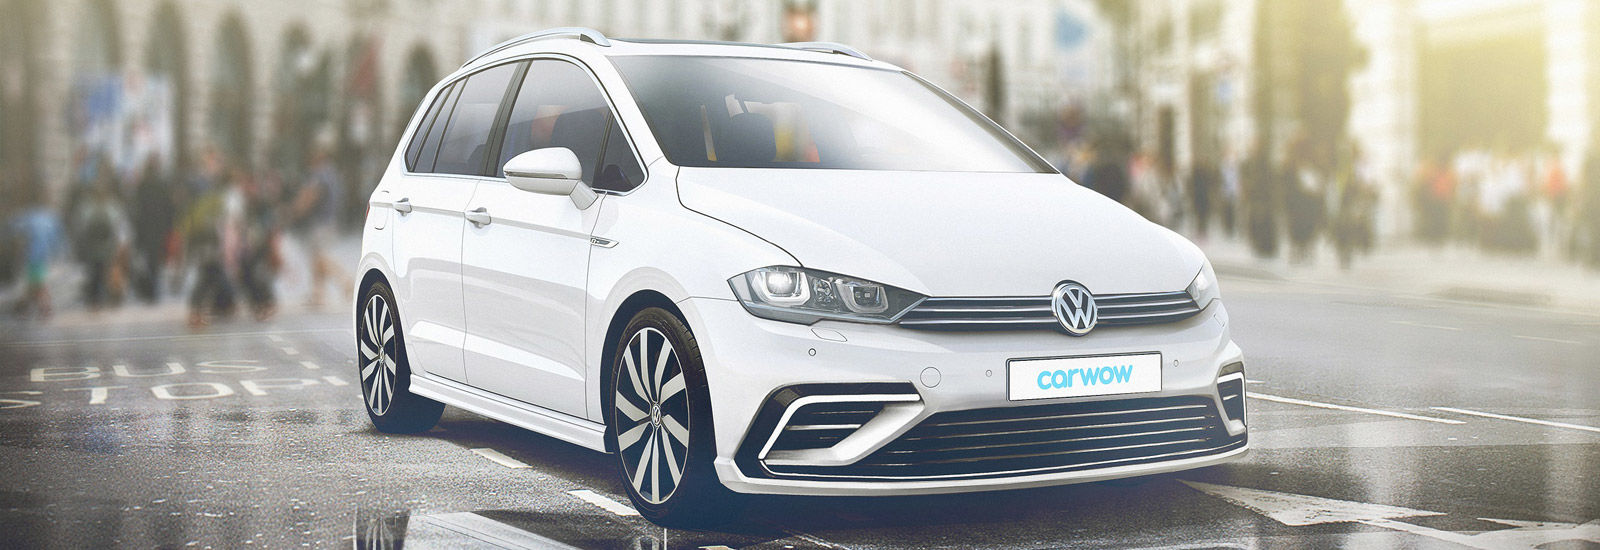 2018 Gti Release >> Vw Golf Mk8 | www.pixshark.com - Images Galleries With A Bite!